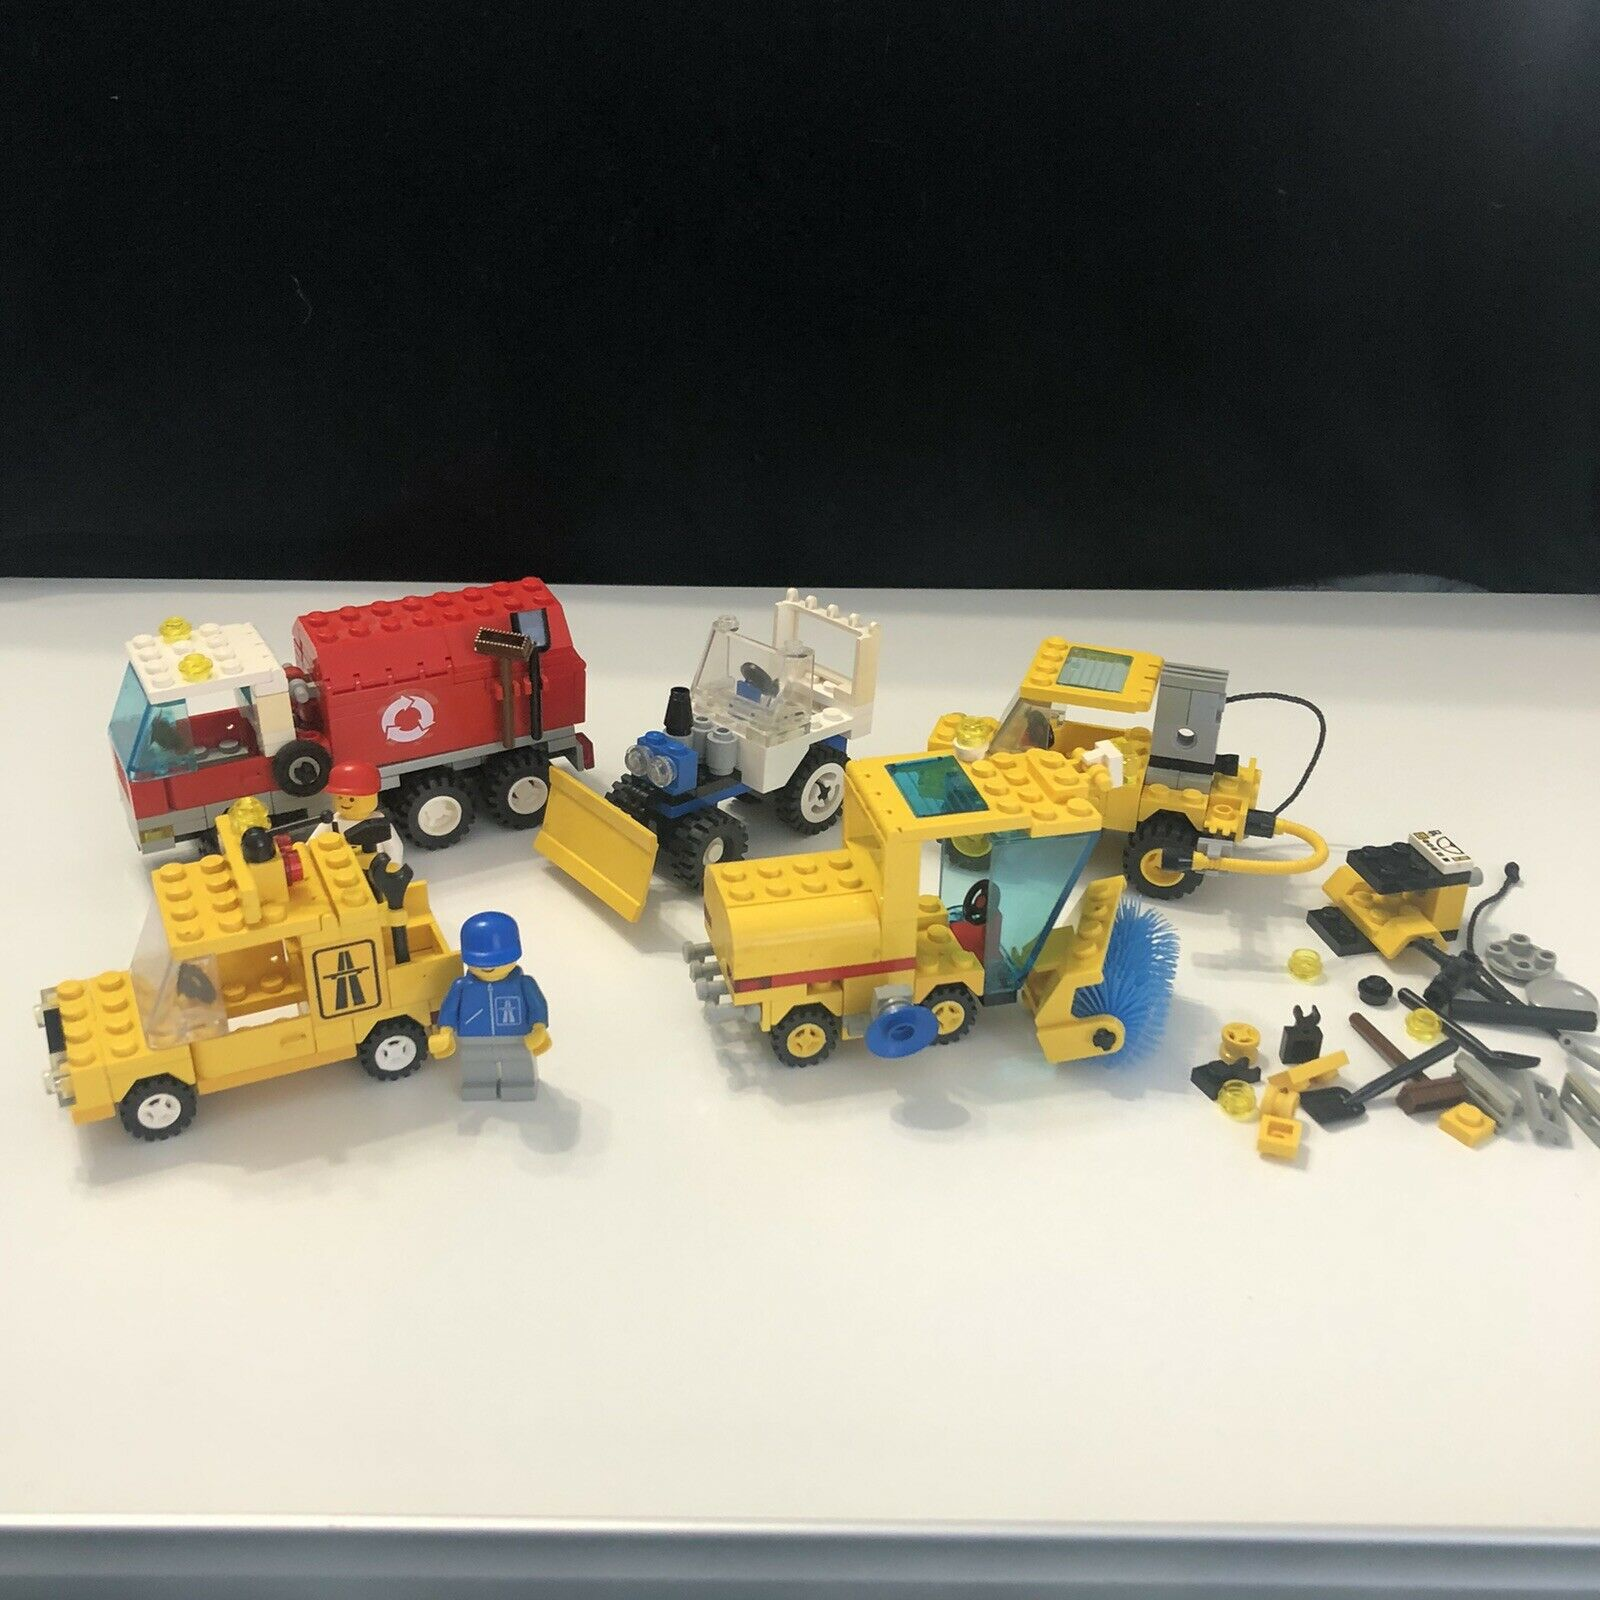 Lego 6649 6521 6667 6524 6668 Vintage Traffic Town Recycle Sweeper Truck Pothole